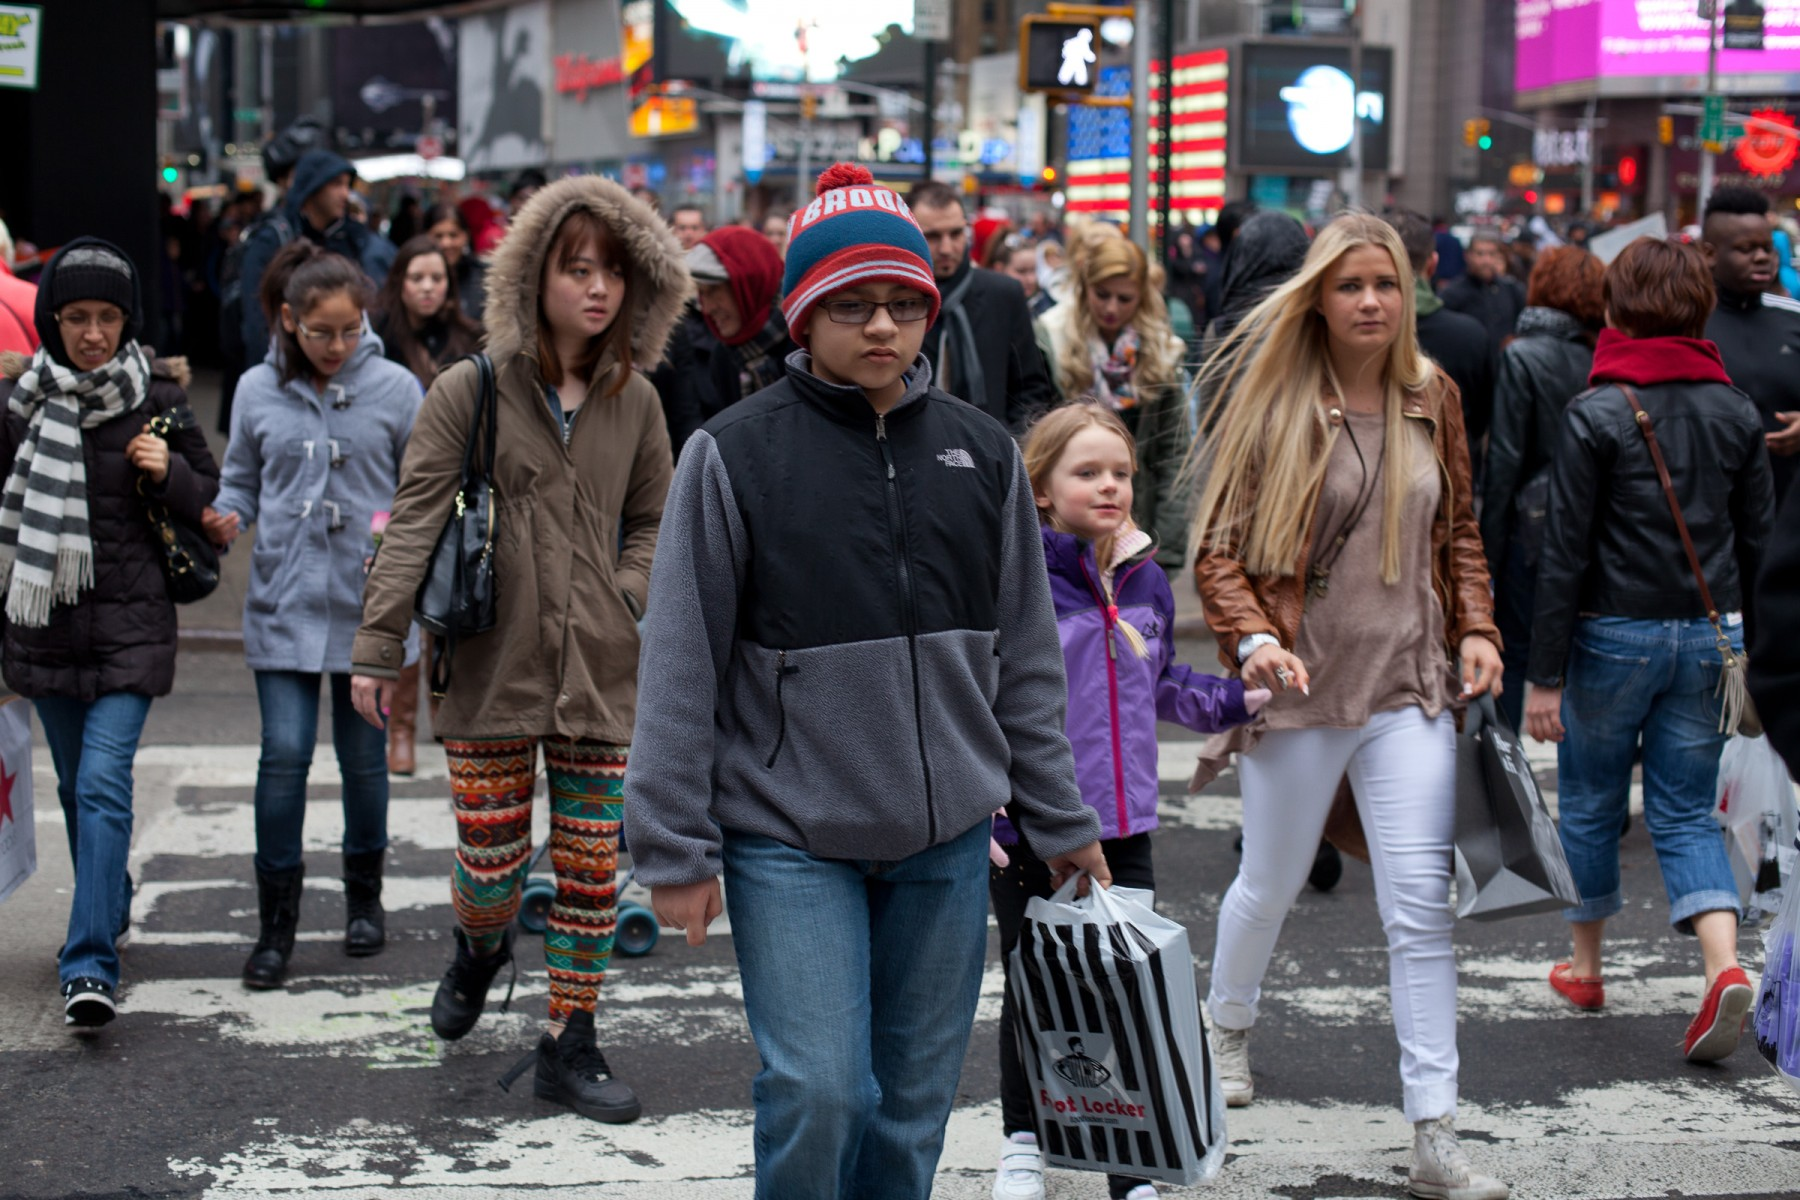 Crowds at a pedestrian crossing in New York City's Times Square